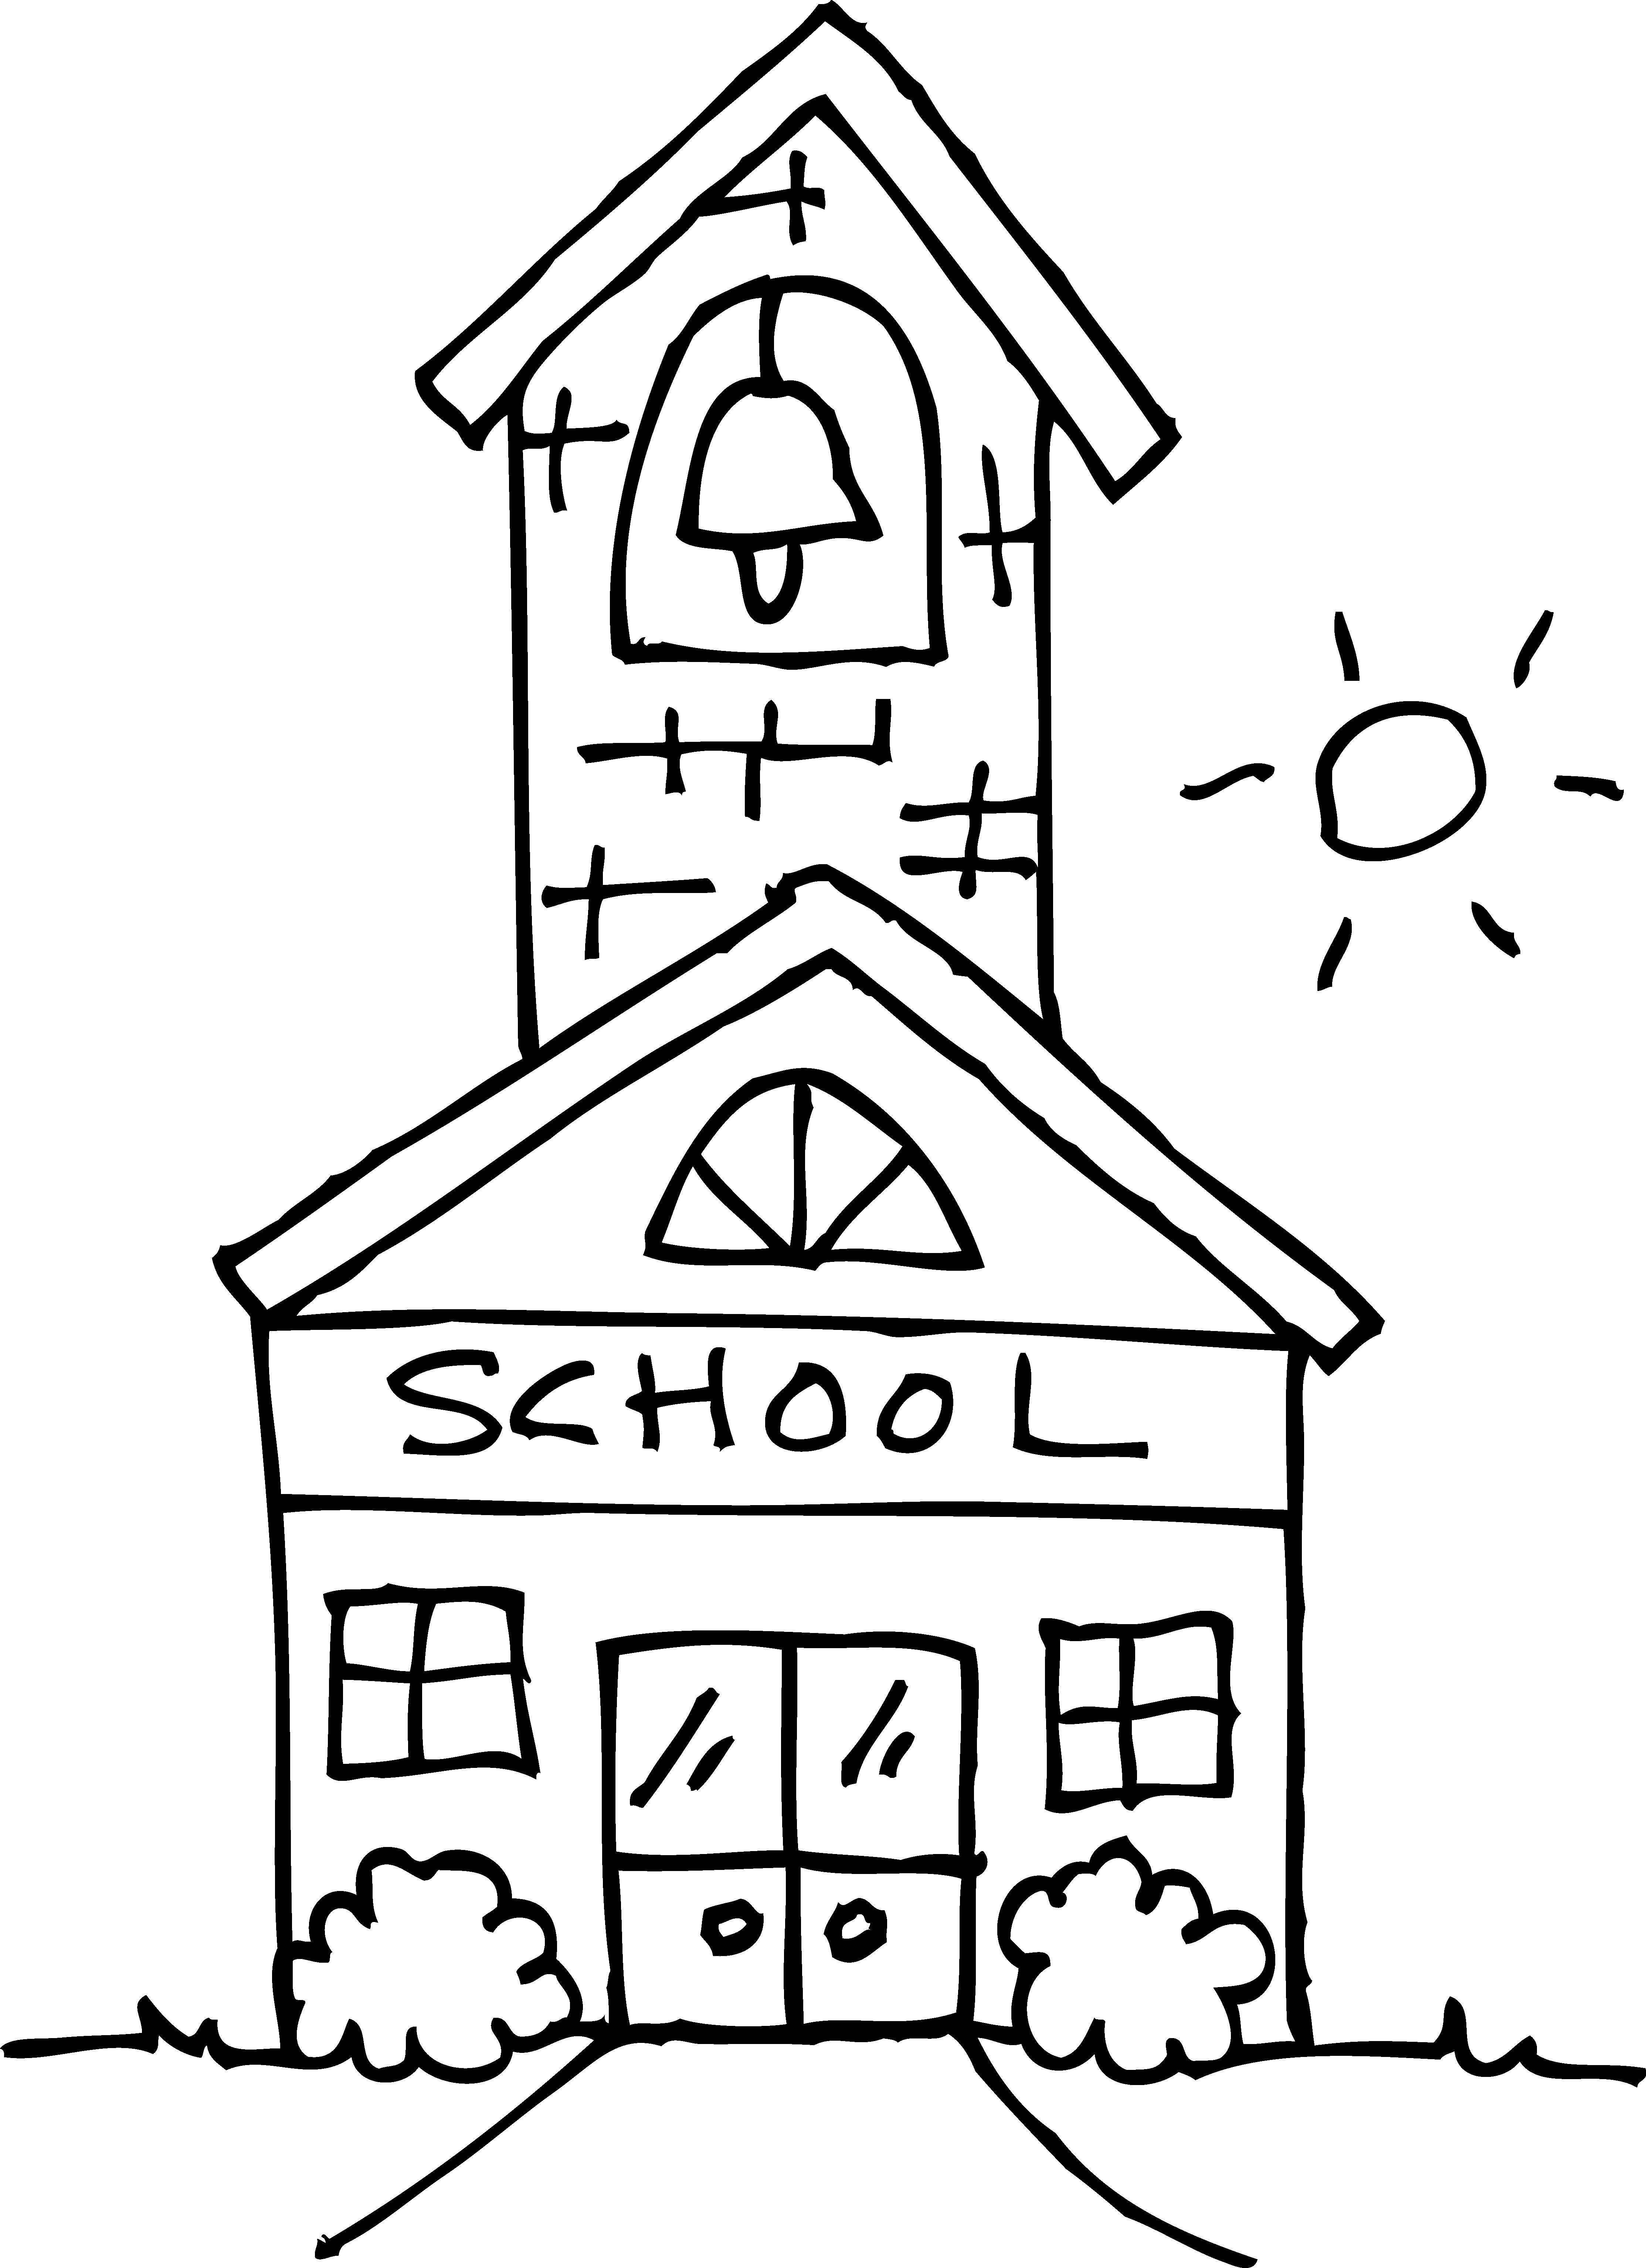 Schoolhouse clipart education. Cute coloring page free